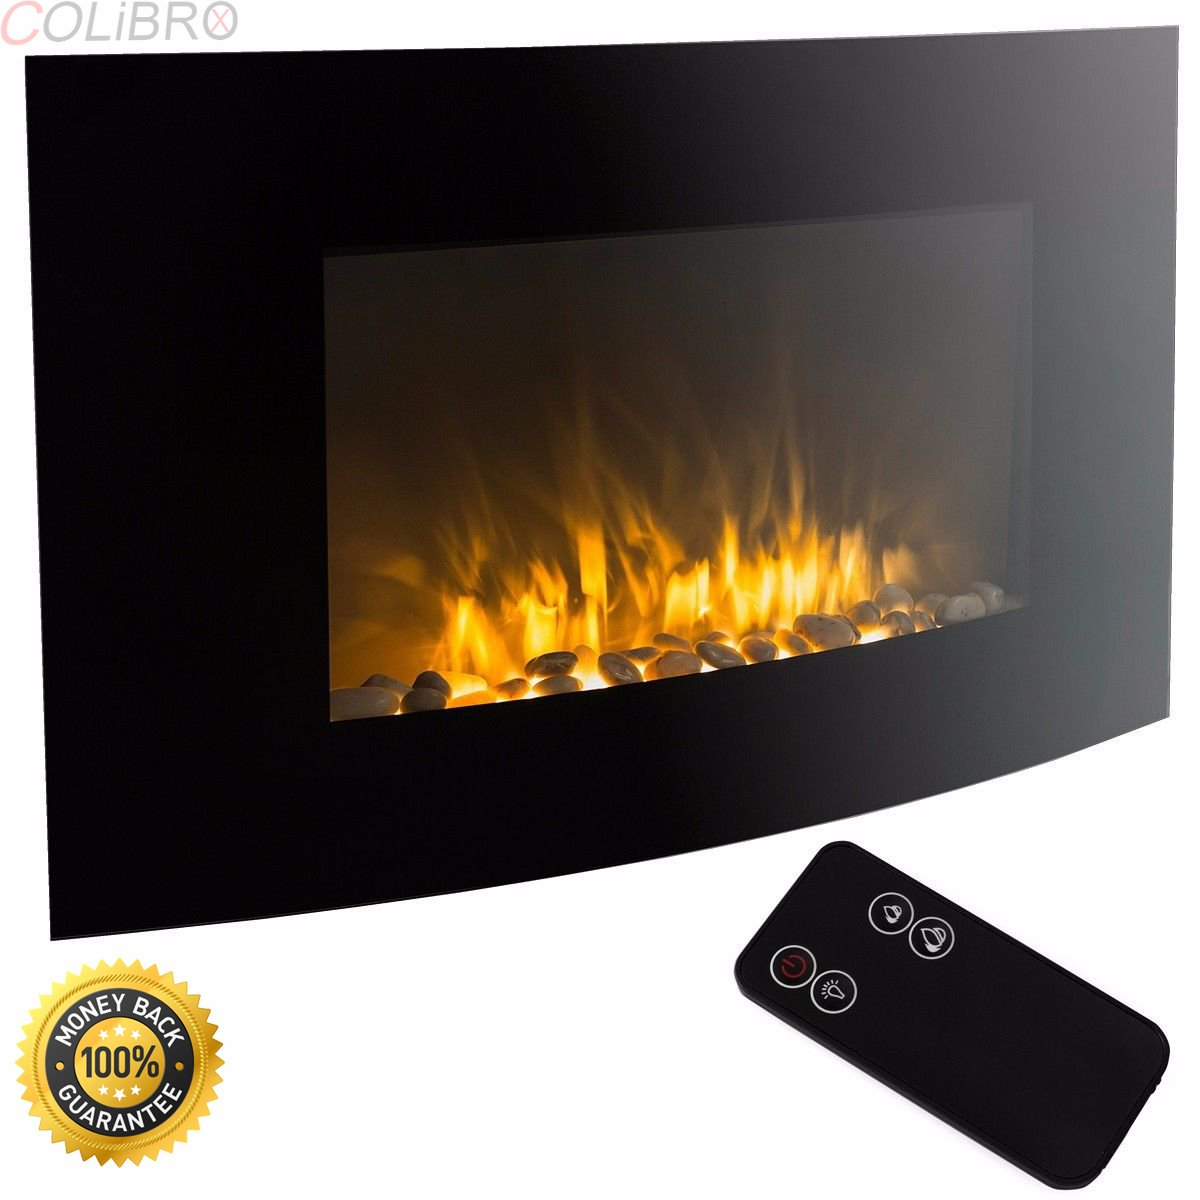 COLIBROX--1500 WATT Electric Fire Place Wall Mounted Heater W/ Remote Control Fireplace. Stunning Mountable Glass Fireplace Heats Spaces Up to 250 Sq/Ft; Ash & Smoke Free Design is Low Maintenance